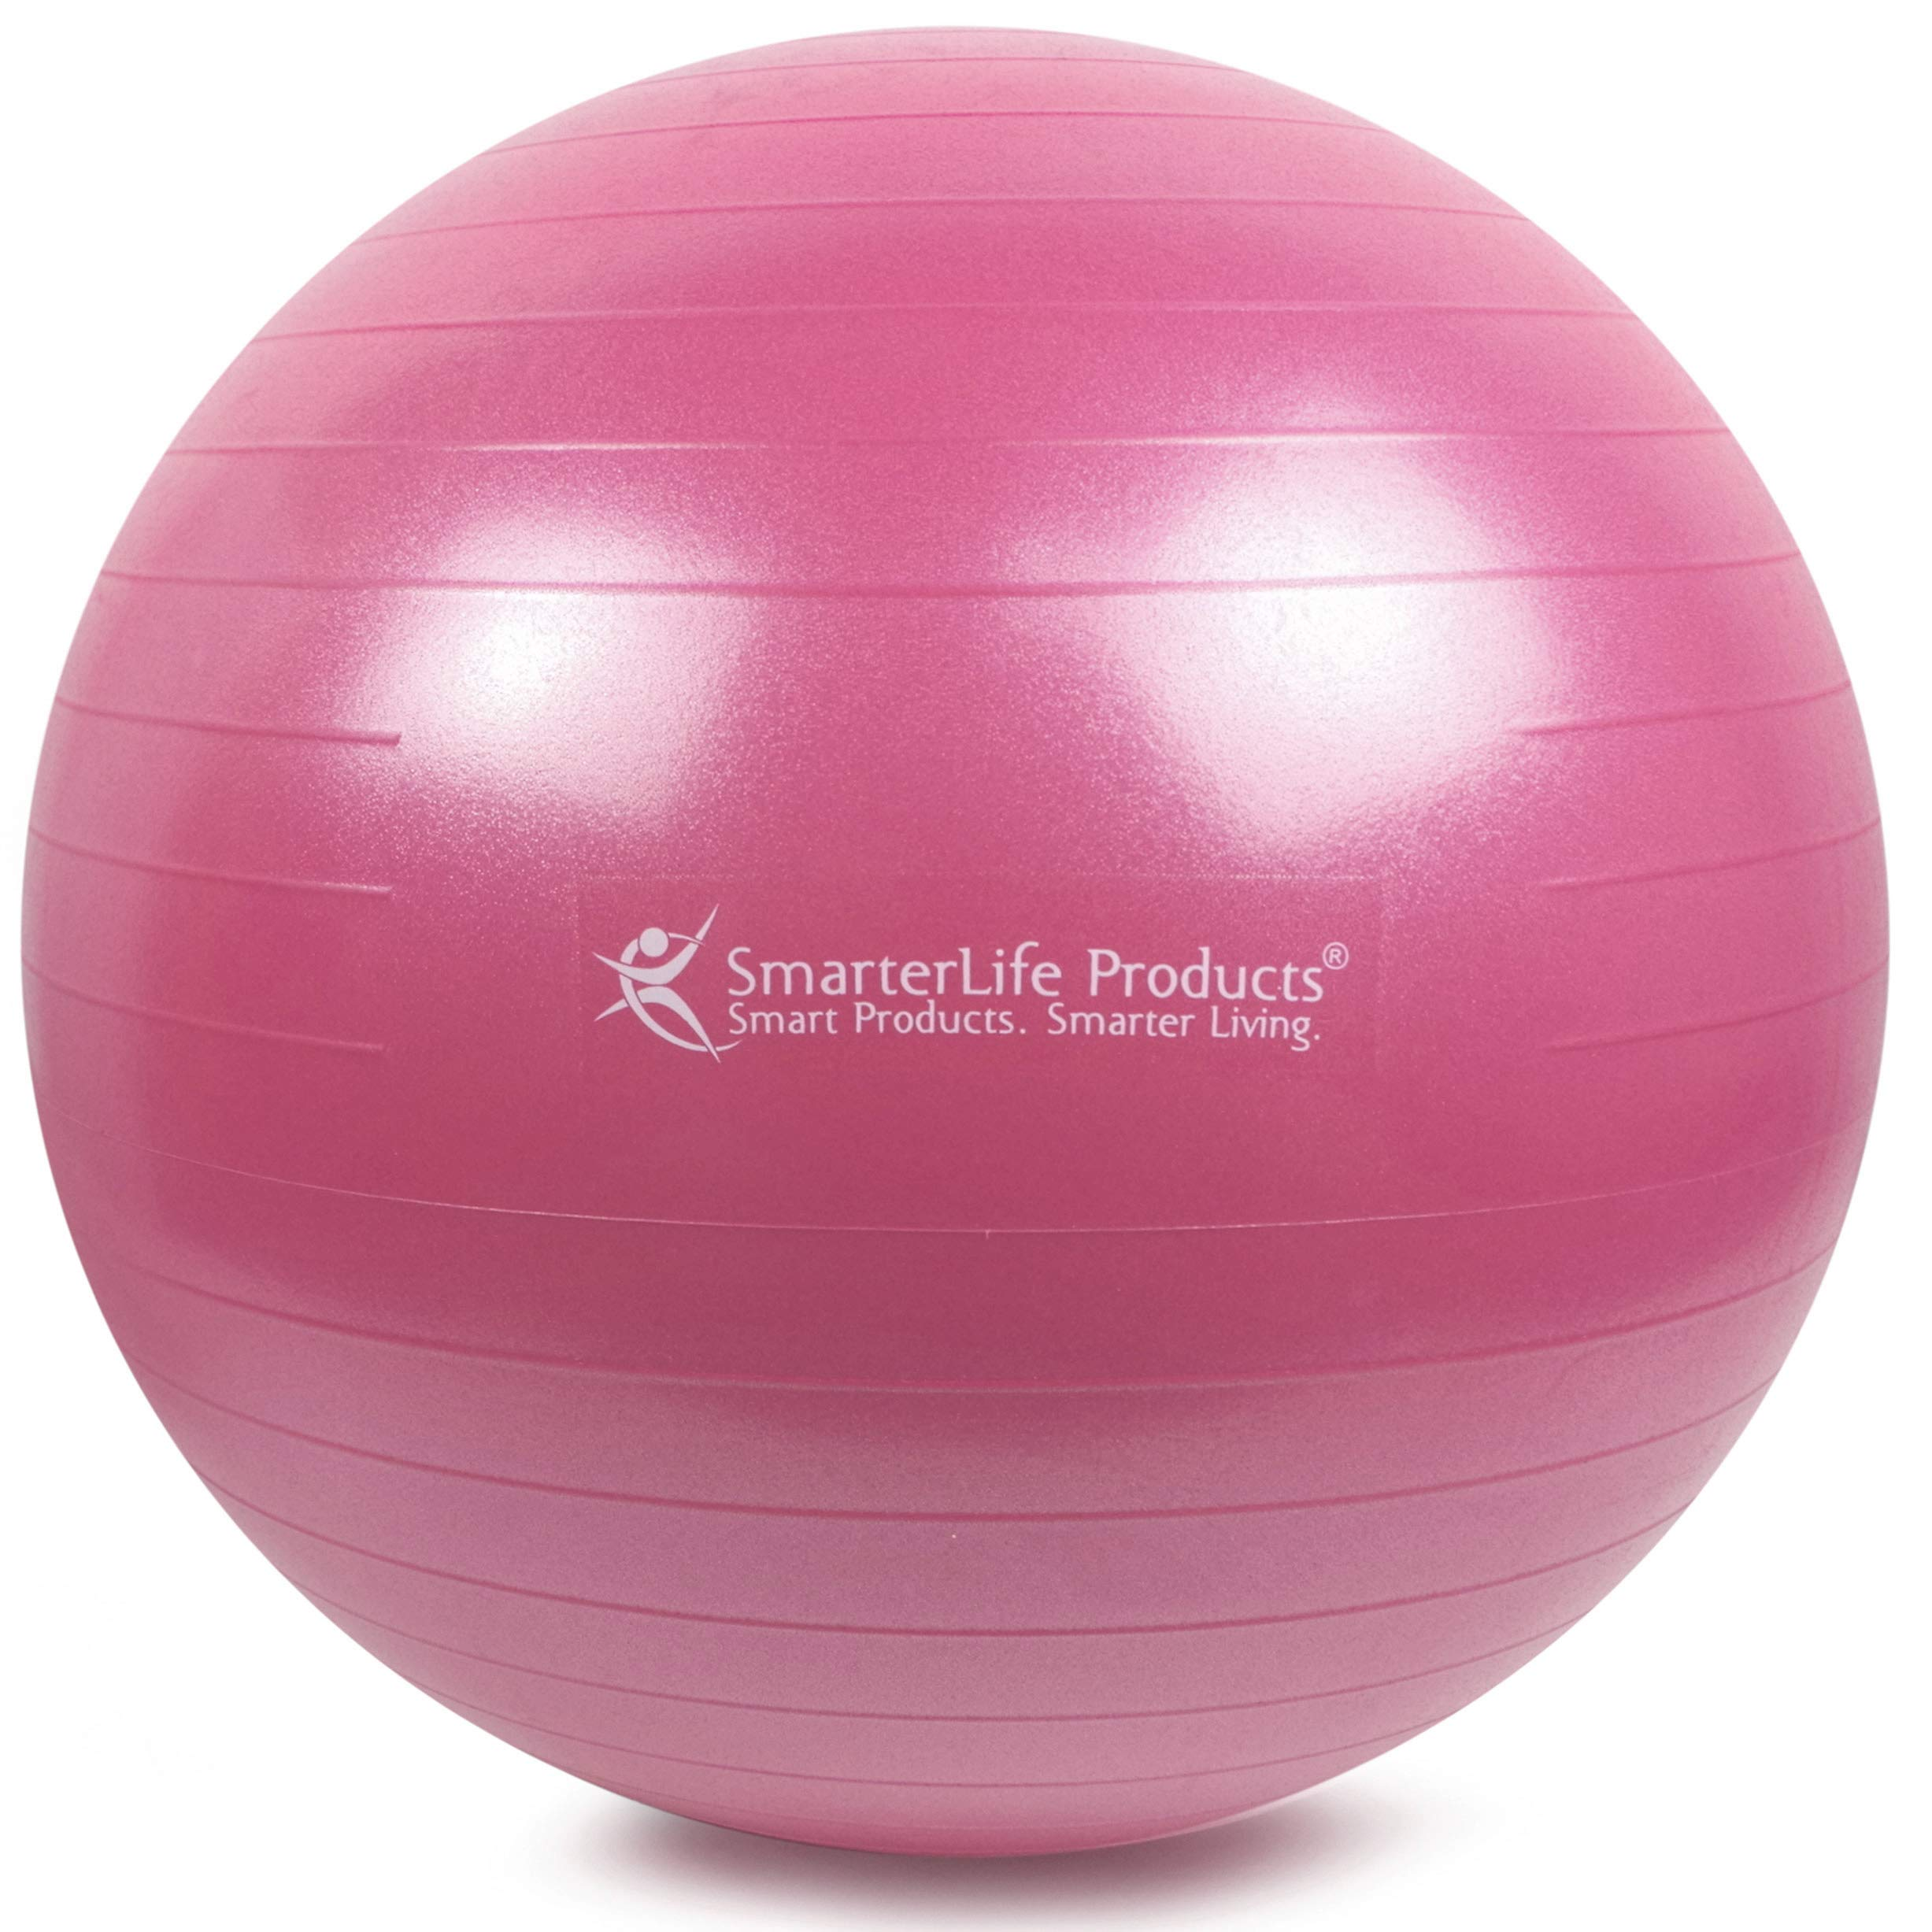 Exercise Ball for Yoga, Balance, Stability from SmarterLife - Fitness, Pilates, Birthing, Therapy, Office Ball Chair, Classroom Flexible Seating - Anti Burst, No Slip, Workout Guide (Pink, 65 cm) by SmarterLife Products (Image #2)